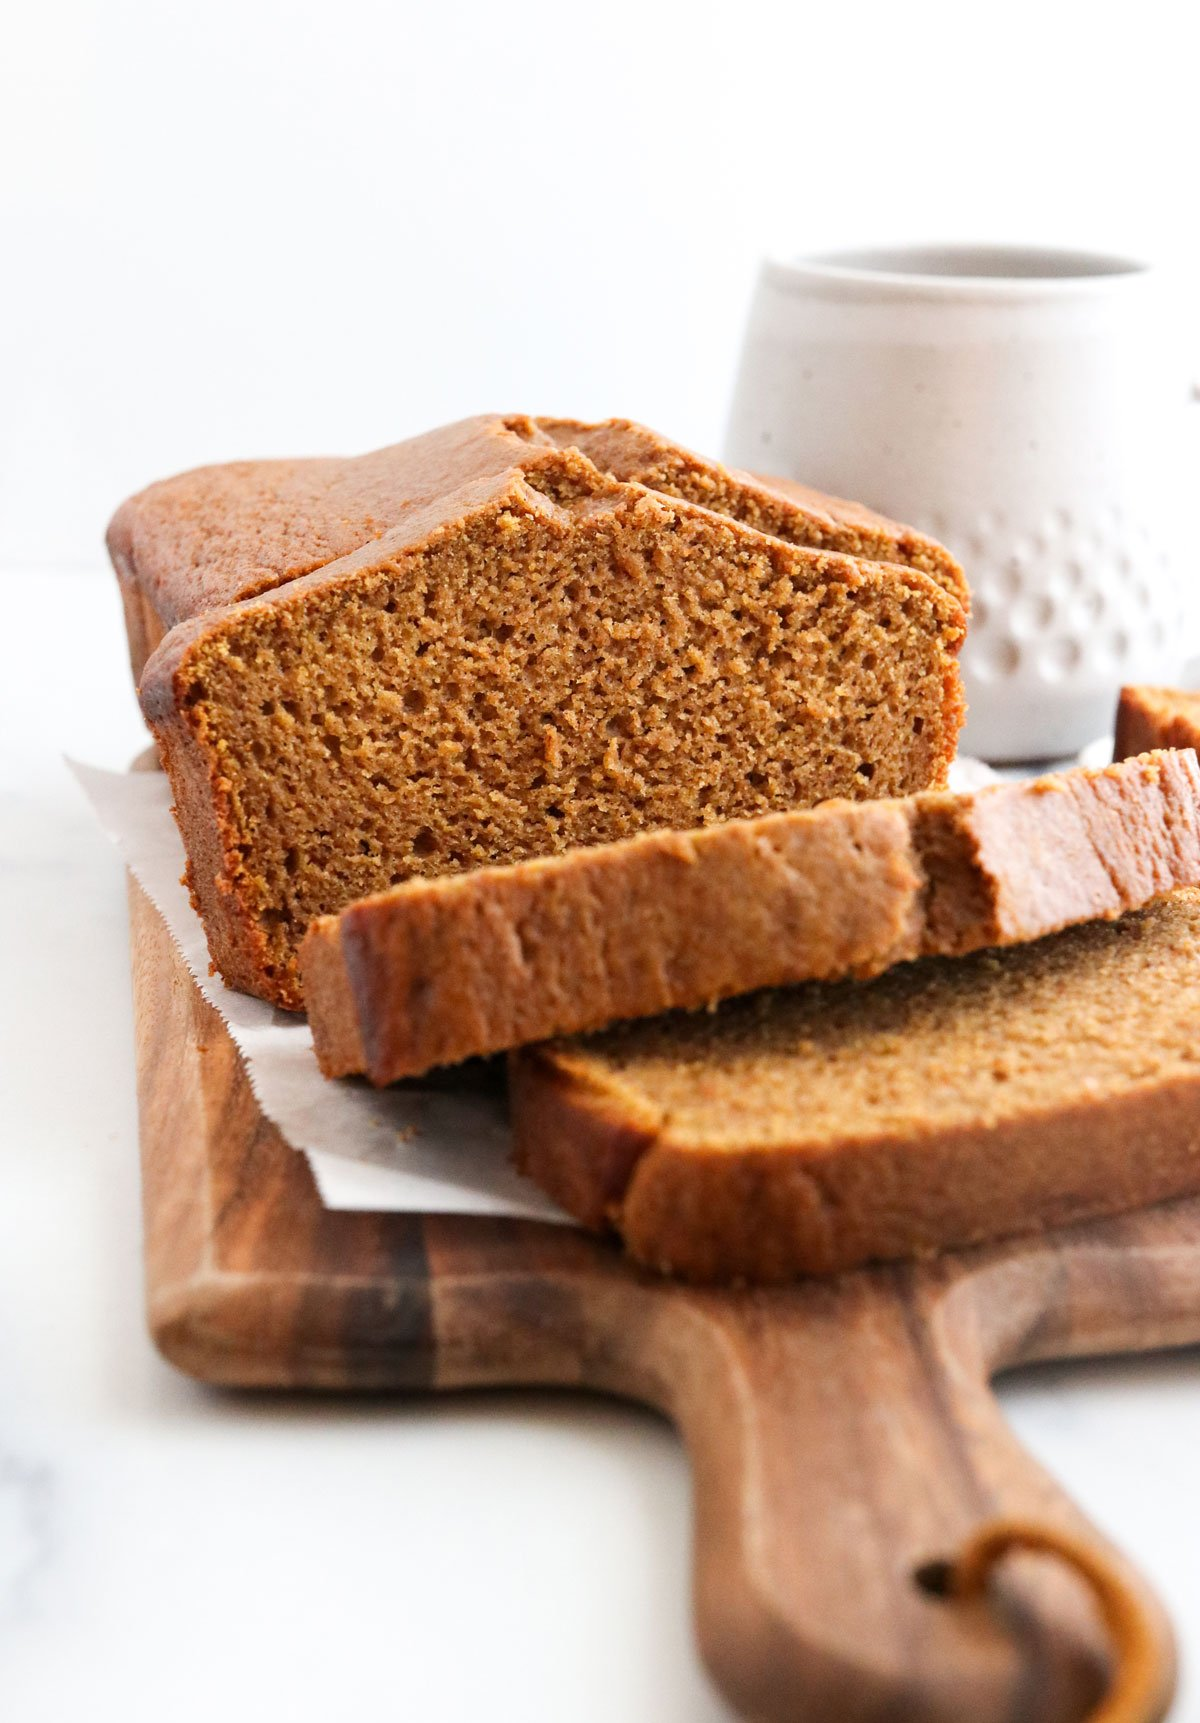 pumpkin bread sliced from the front